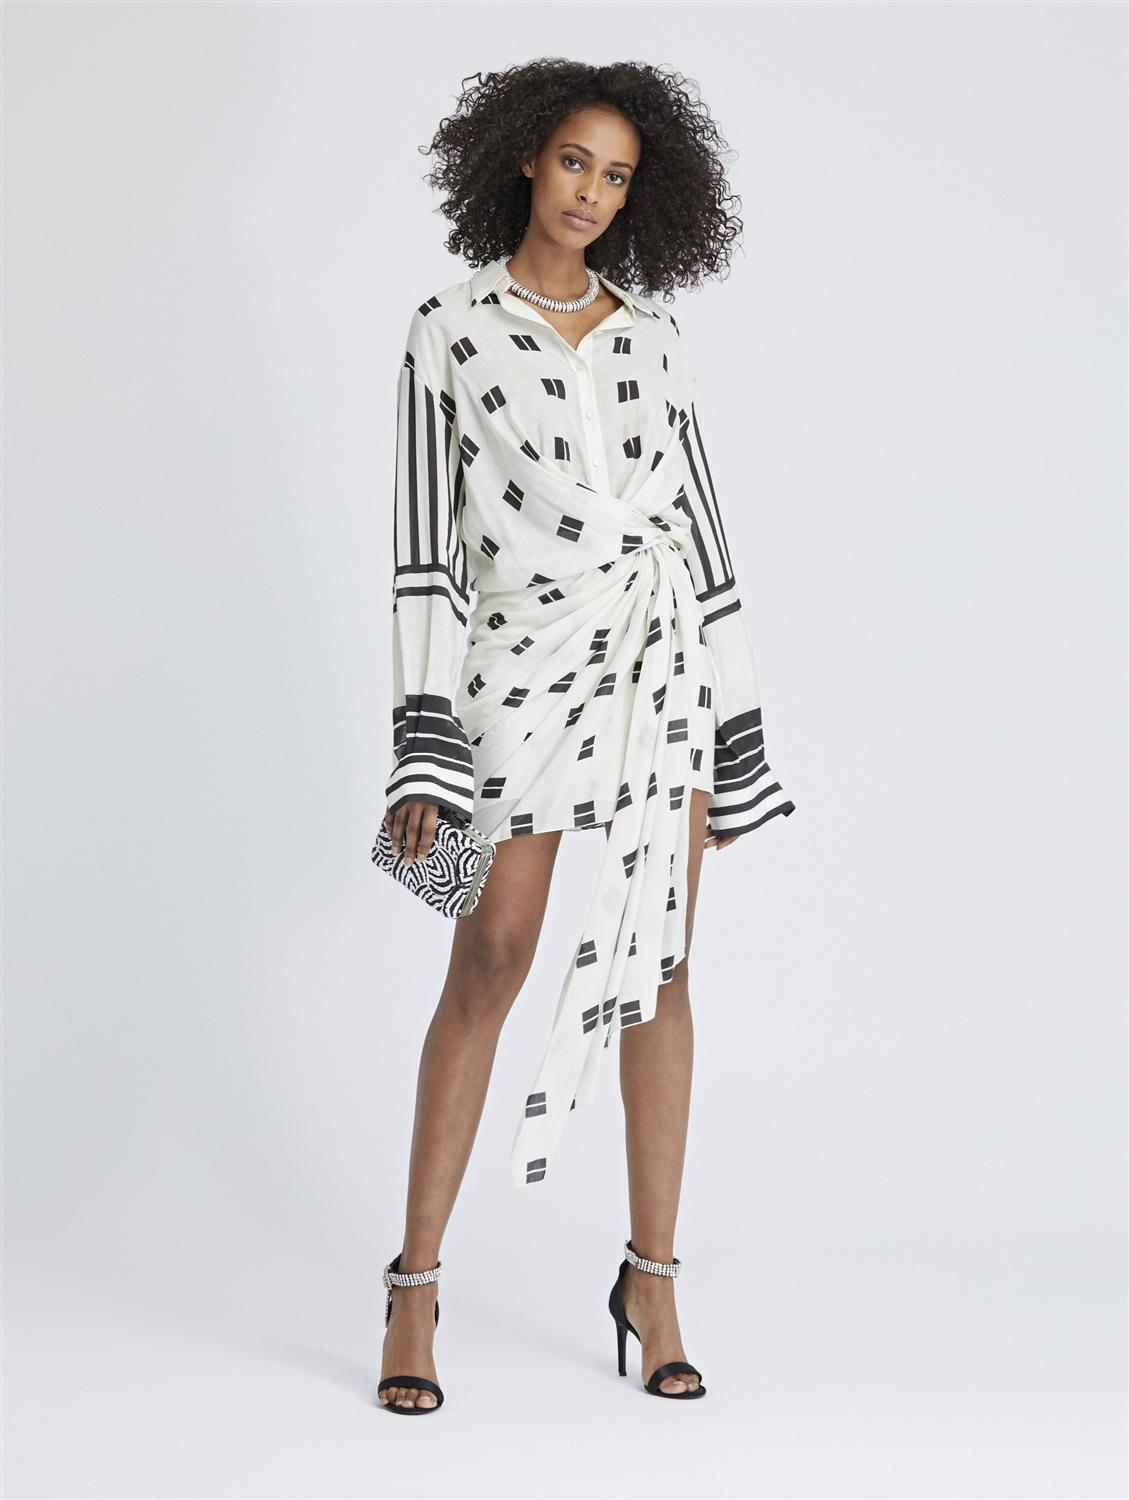 GEO SQUARES AND MIXED STRIPES SHANTUNG VOILE WRAP SHIRTDRESS